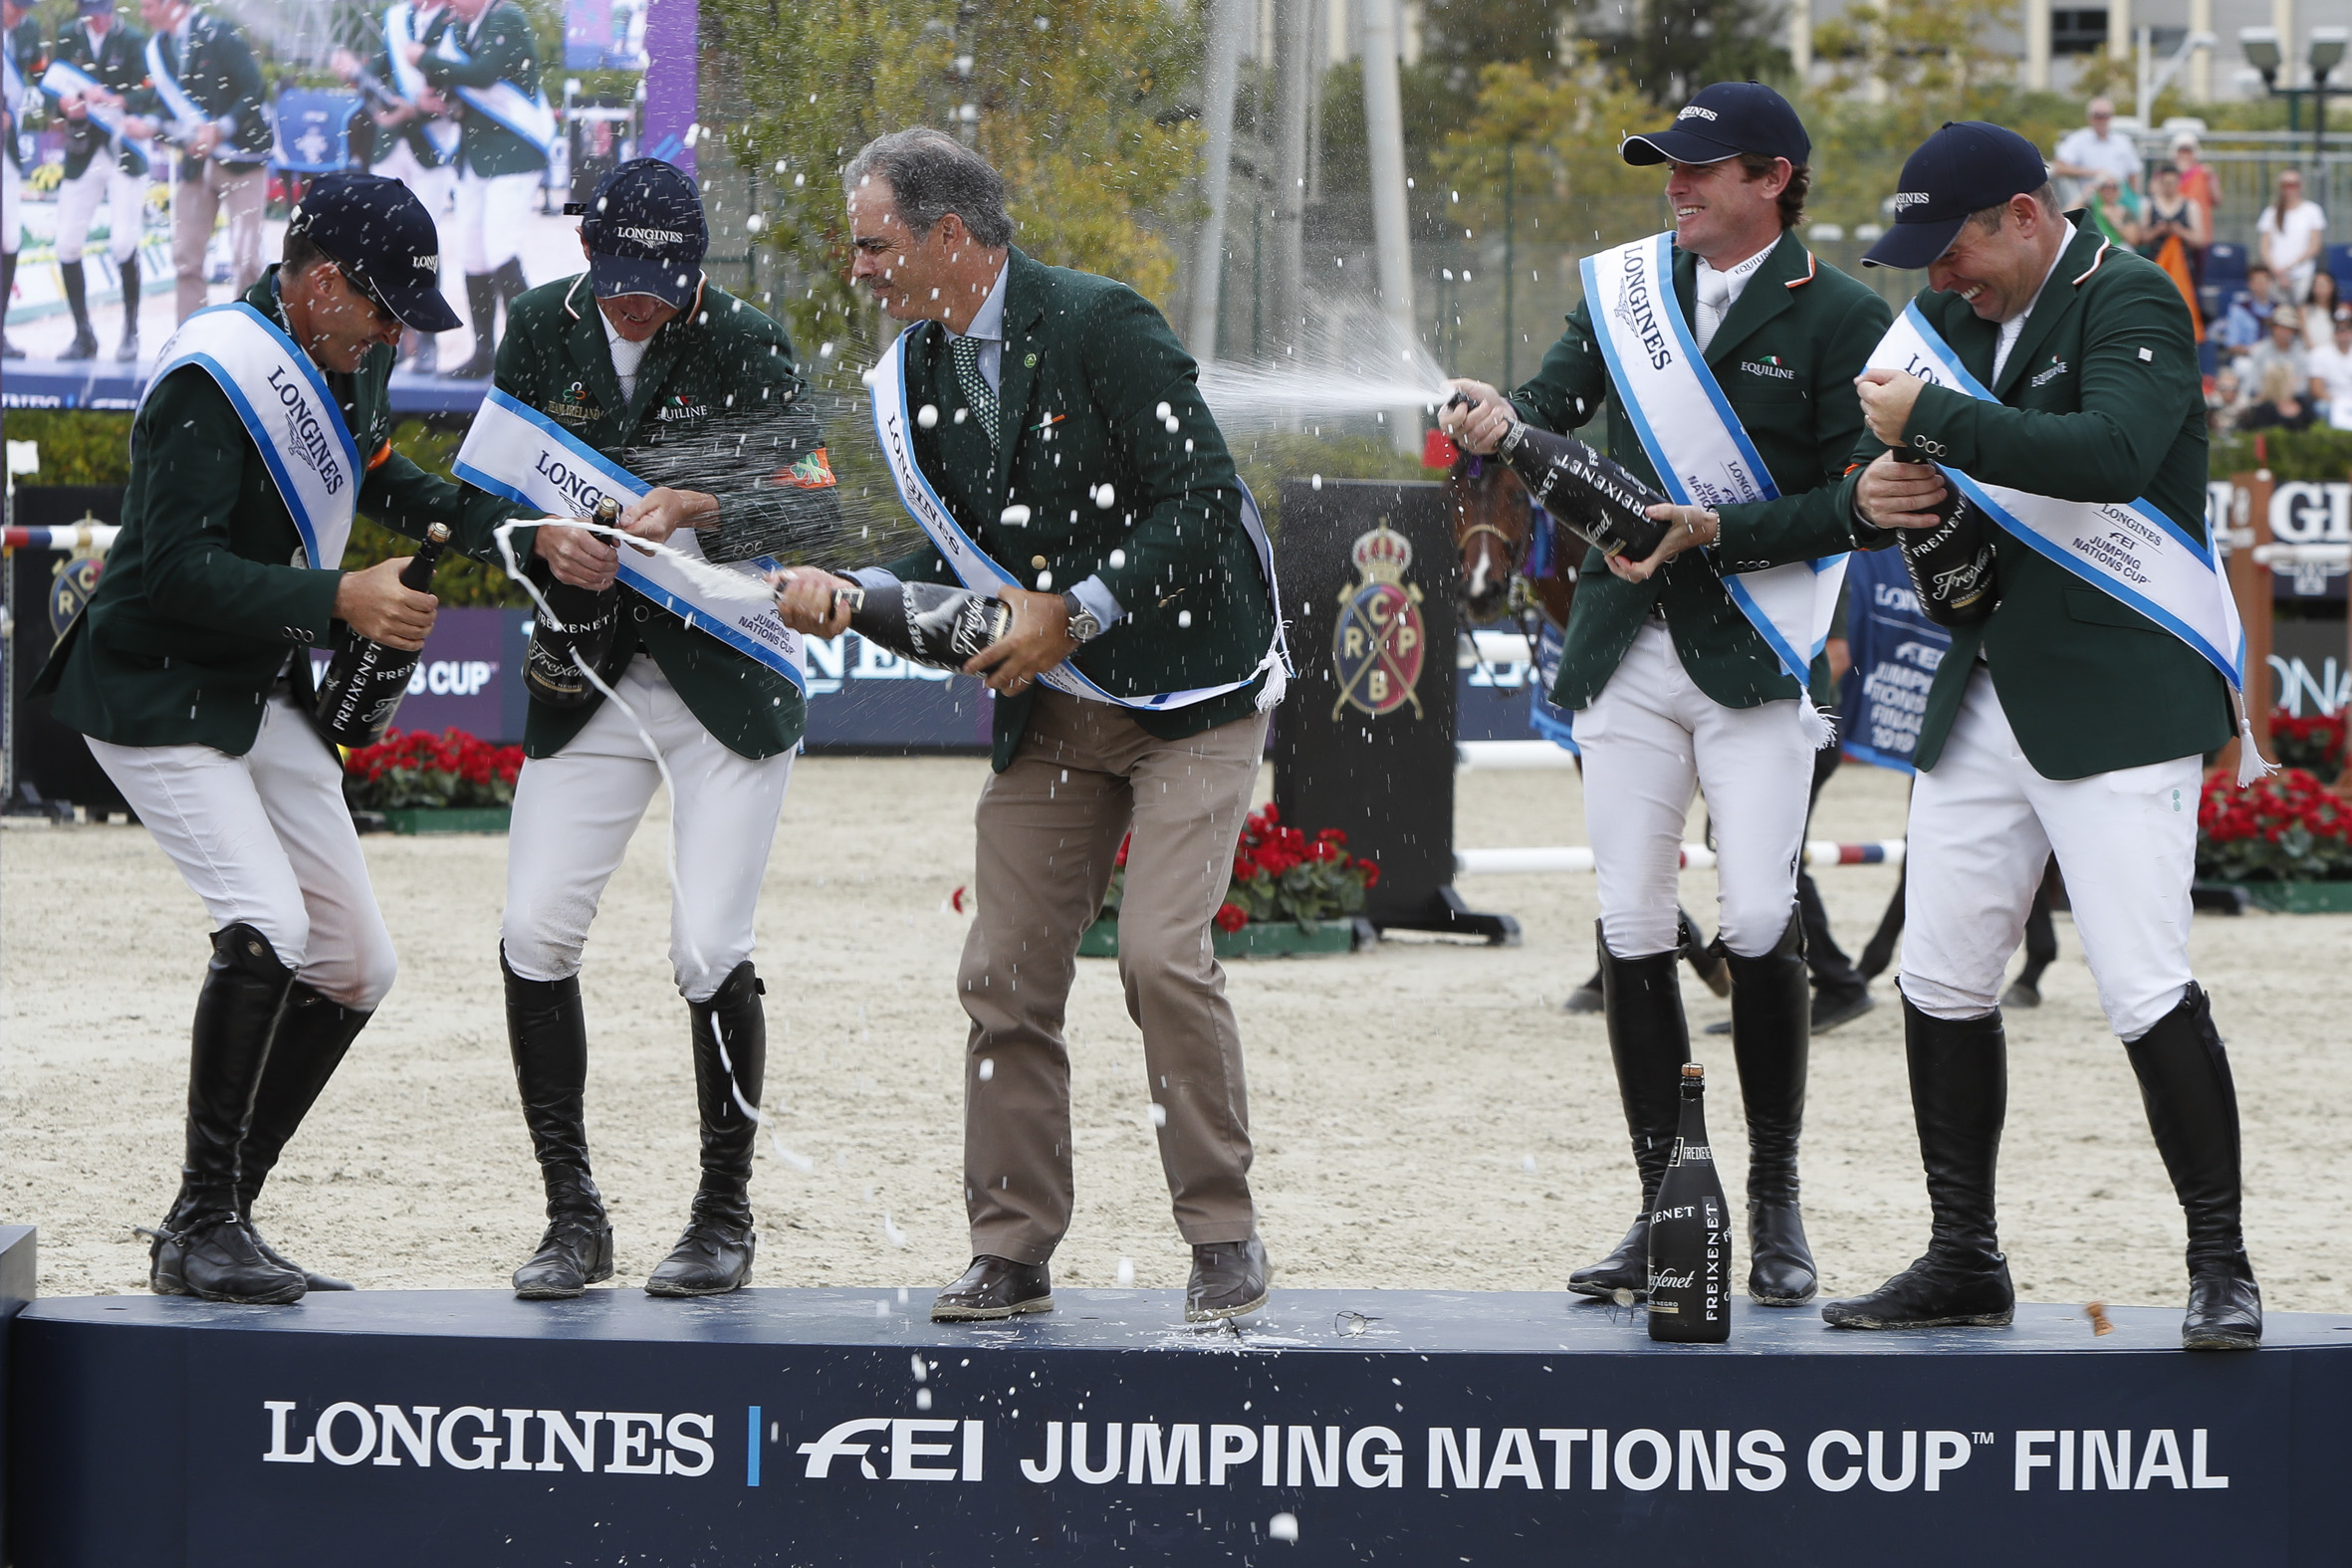 Ireland wins the Longines FEI Jumping Nations Cup Final